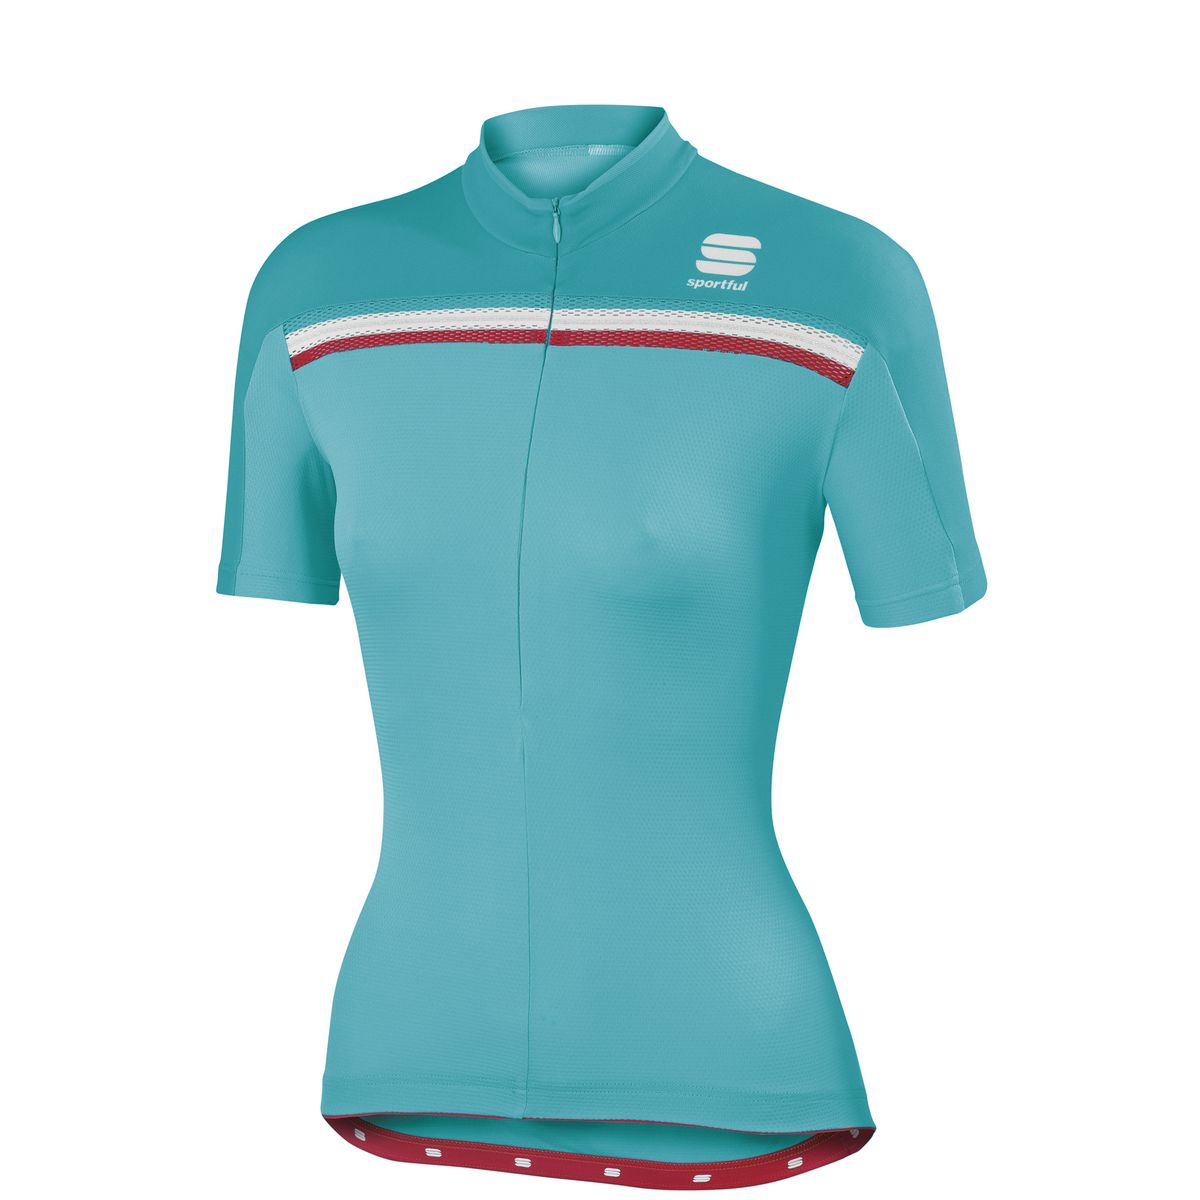 ALLURE JERSEY women's cycling jersey